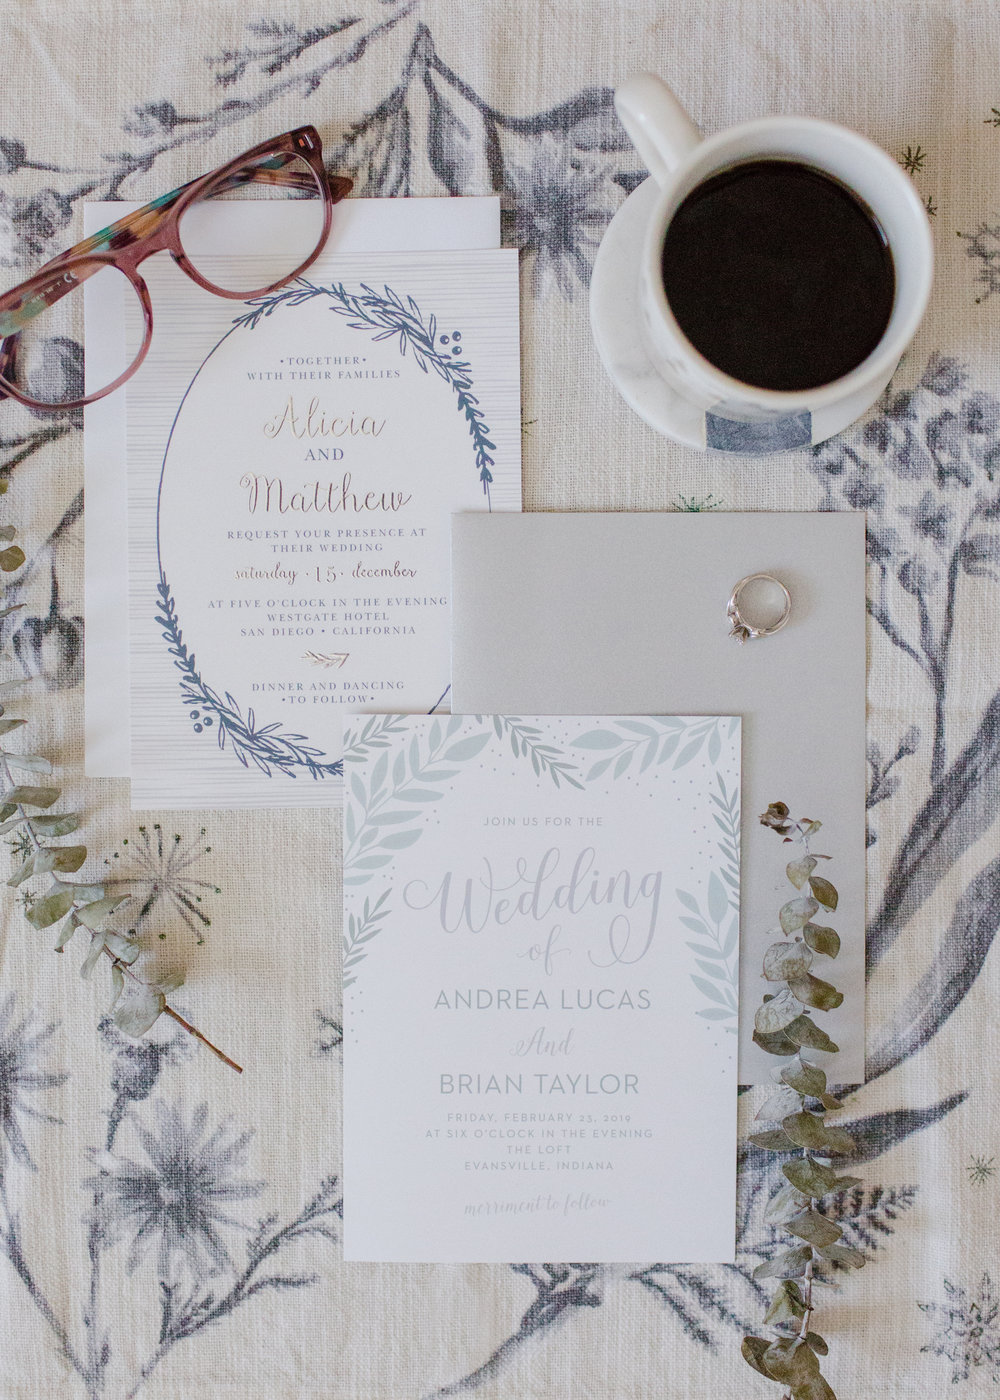 katherine_beth_photography_san_diego_photographer_Brand_rep_San_diego_wedding_Photographer_Basic_Invite_Wedding_Invitations_Save_The_Date_Wedding_Invites-4.jpg